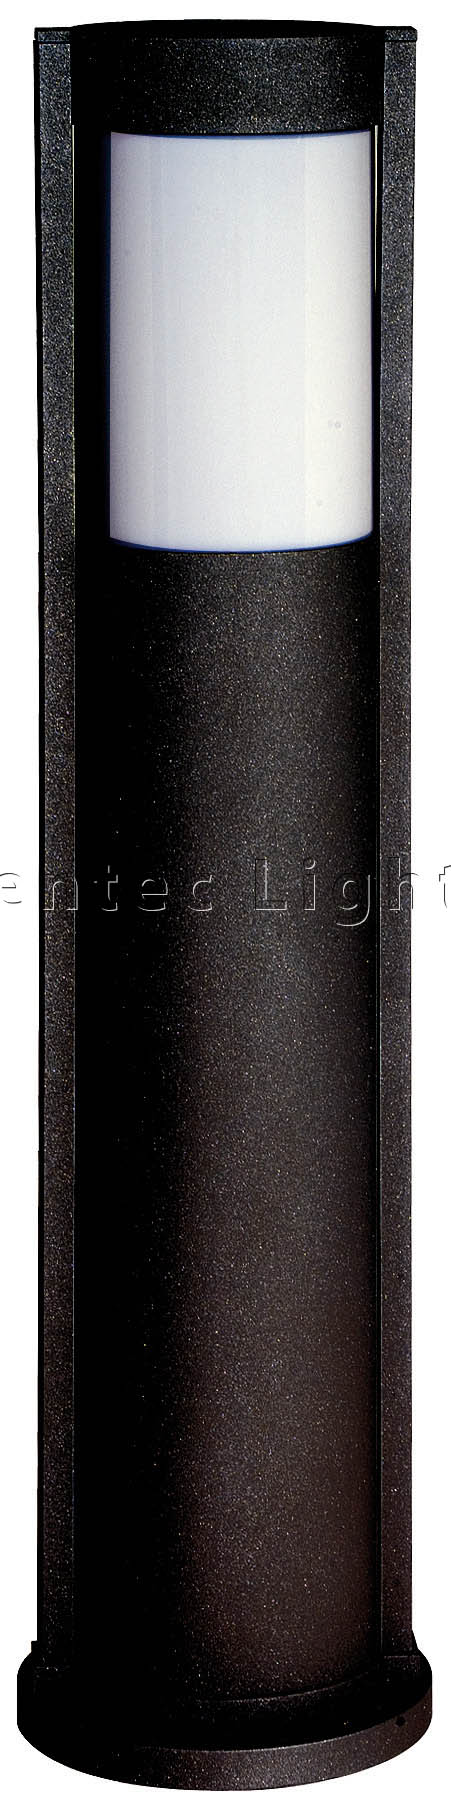 ORL0583 Oki Bollard Outdoor Light in Black Oriel